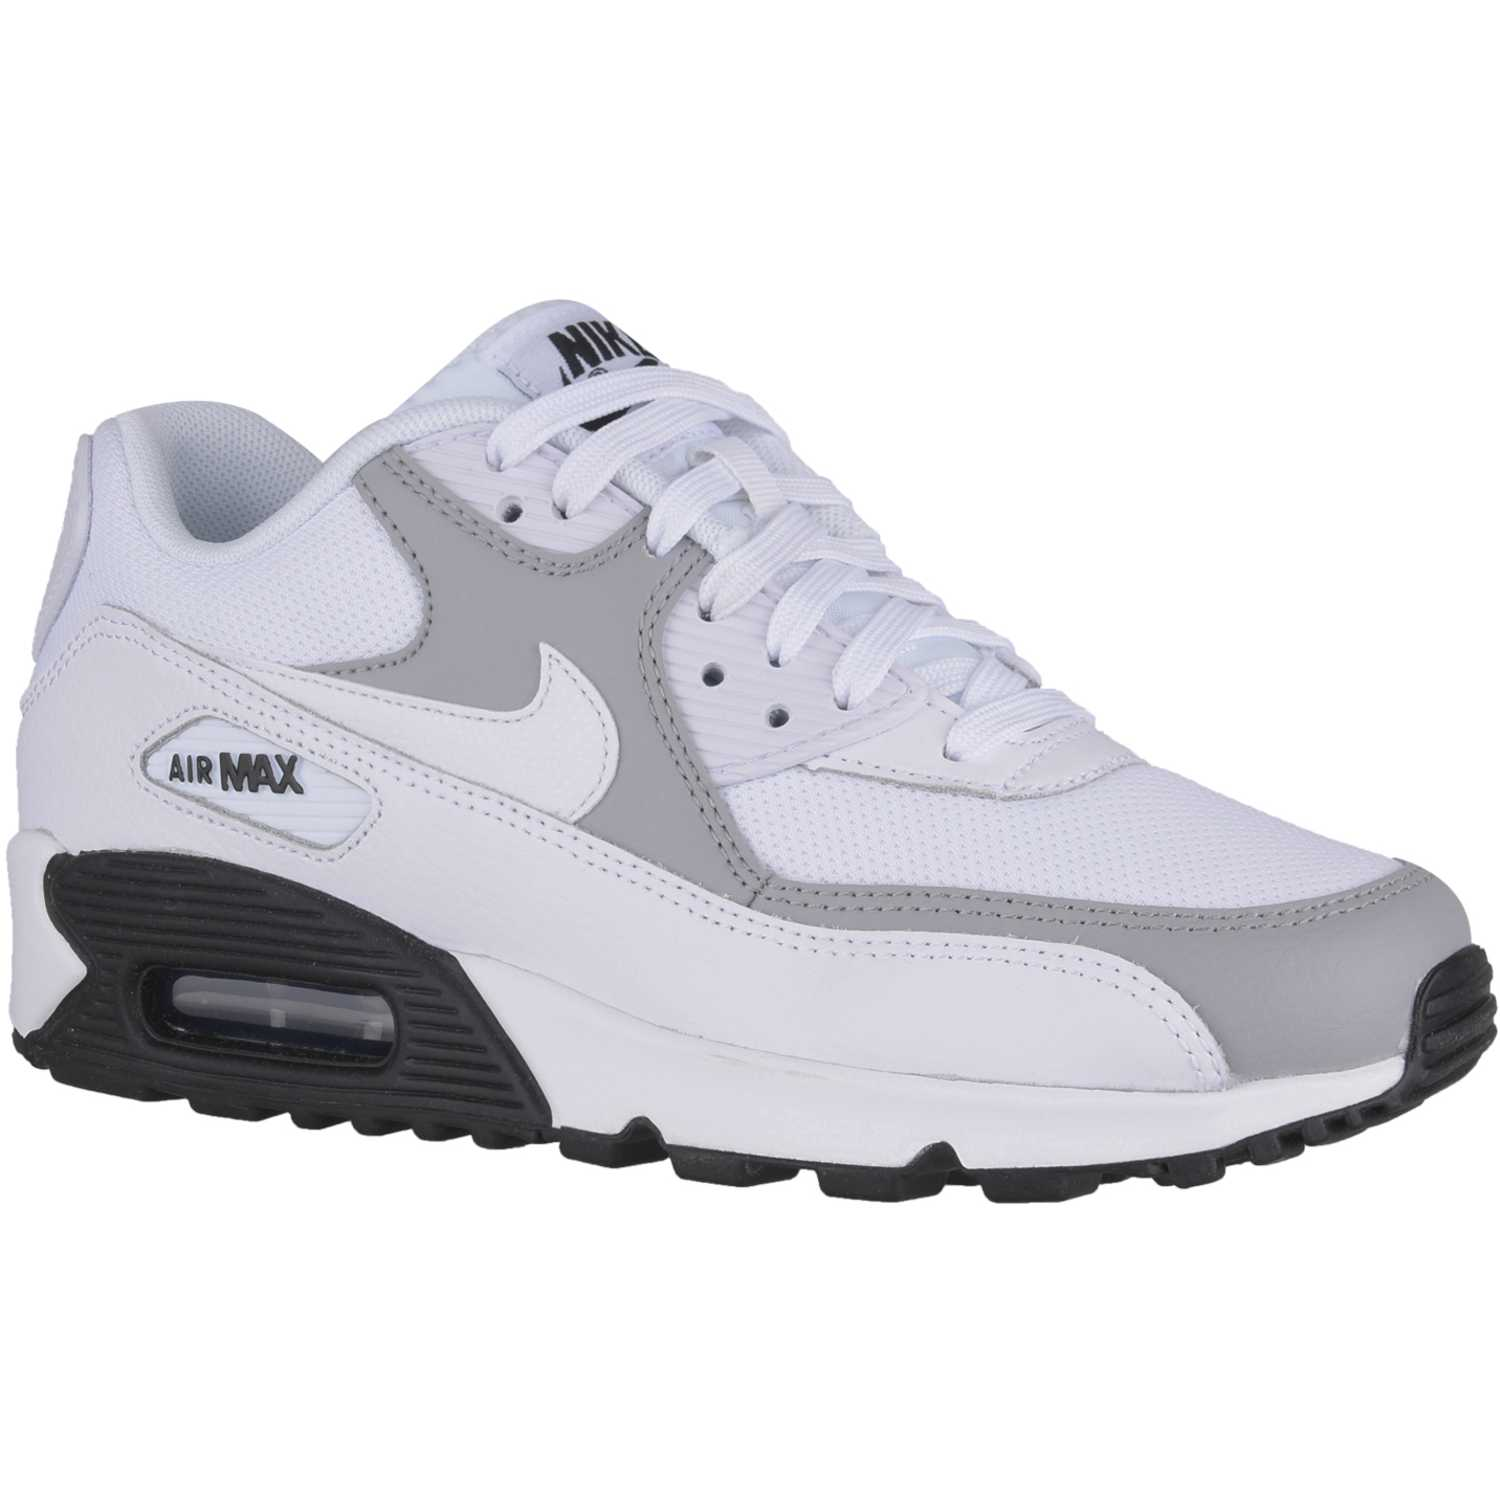 where can i buy nike air max 90 blanco and gris 06ec5 c96c6